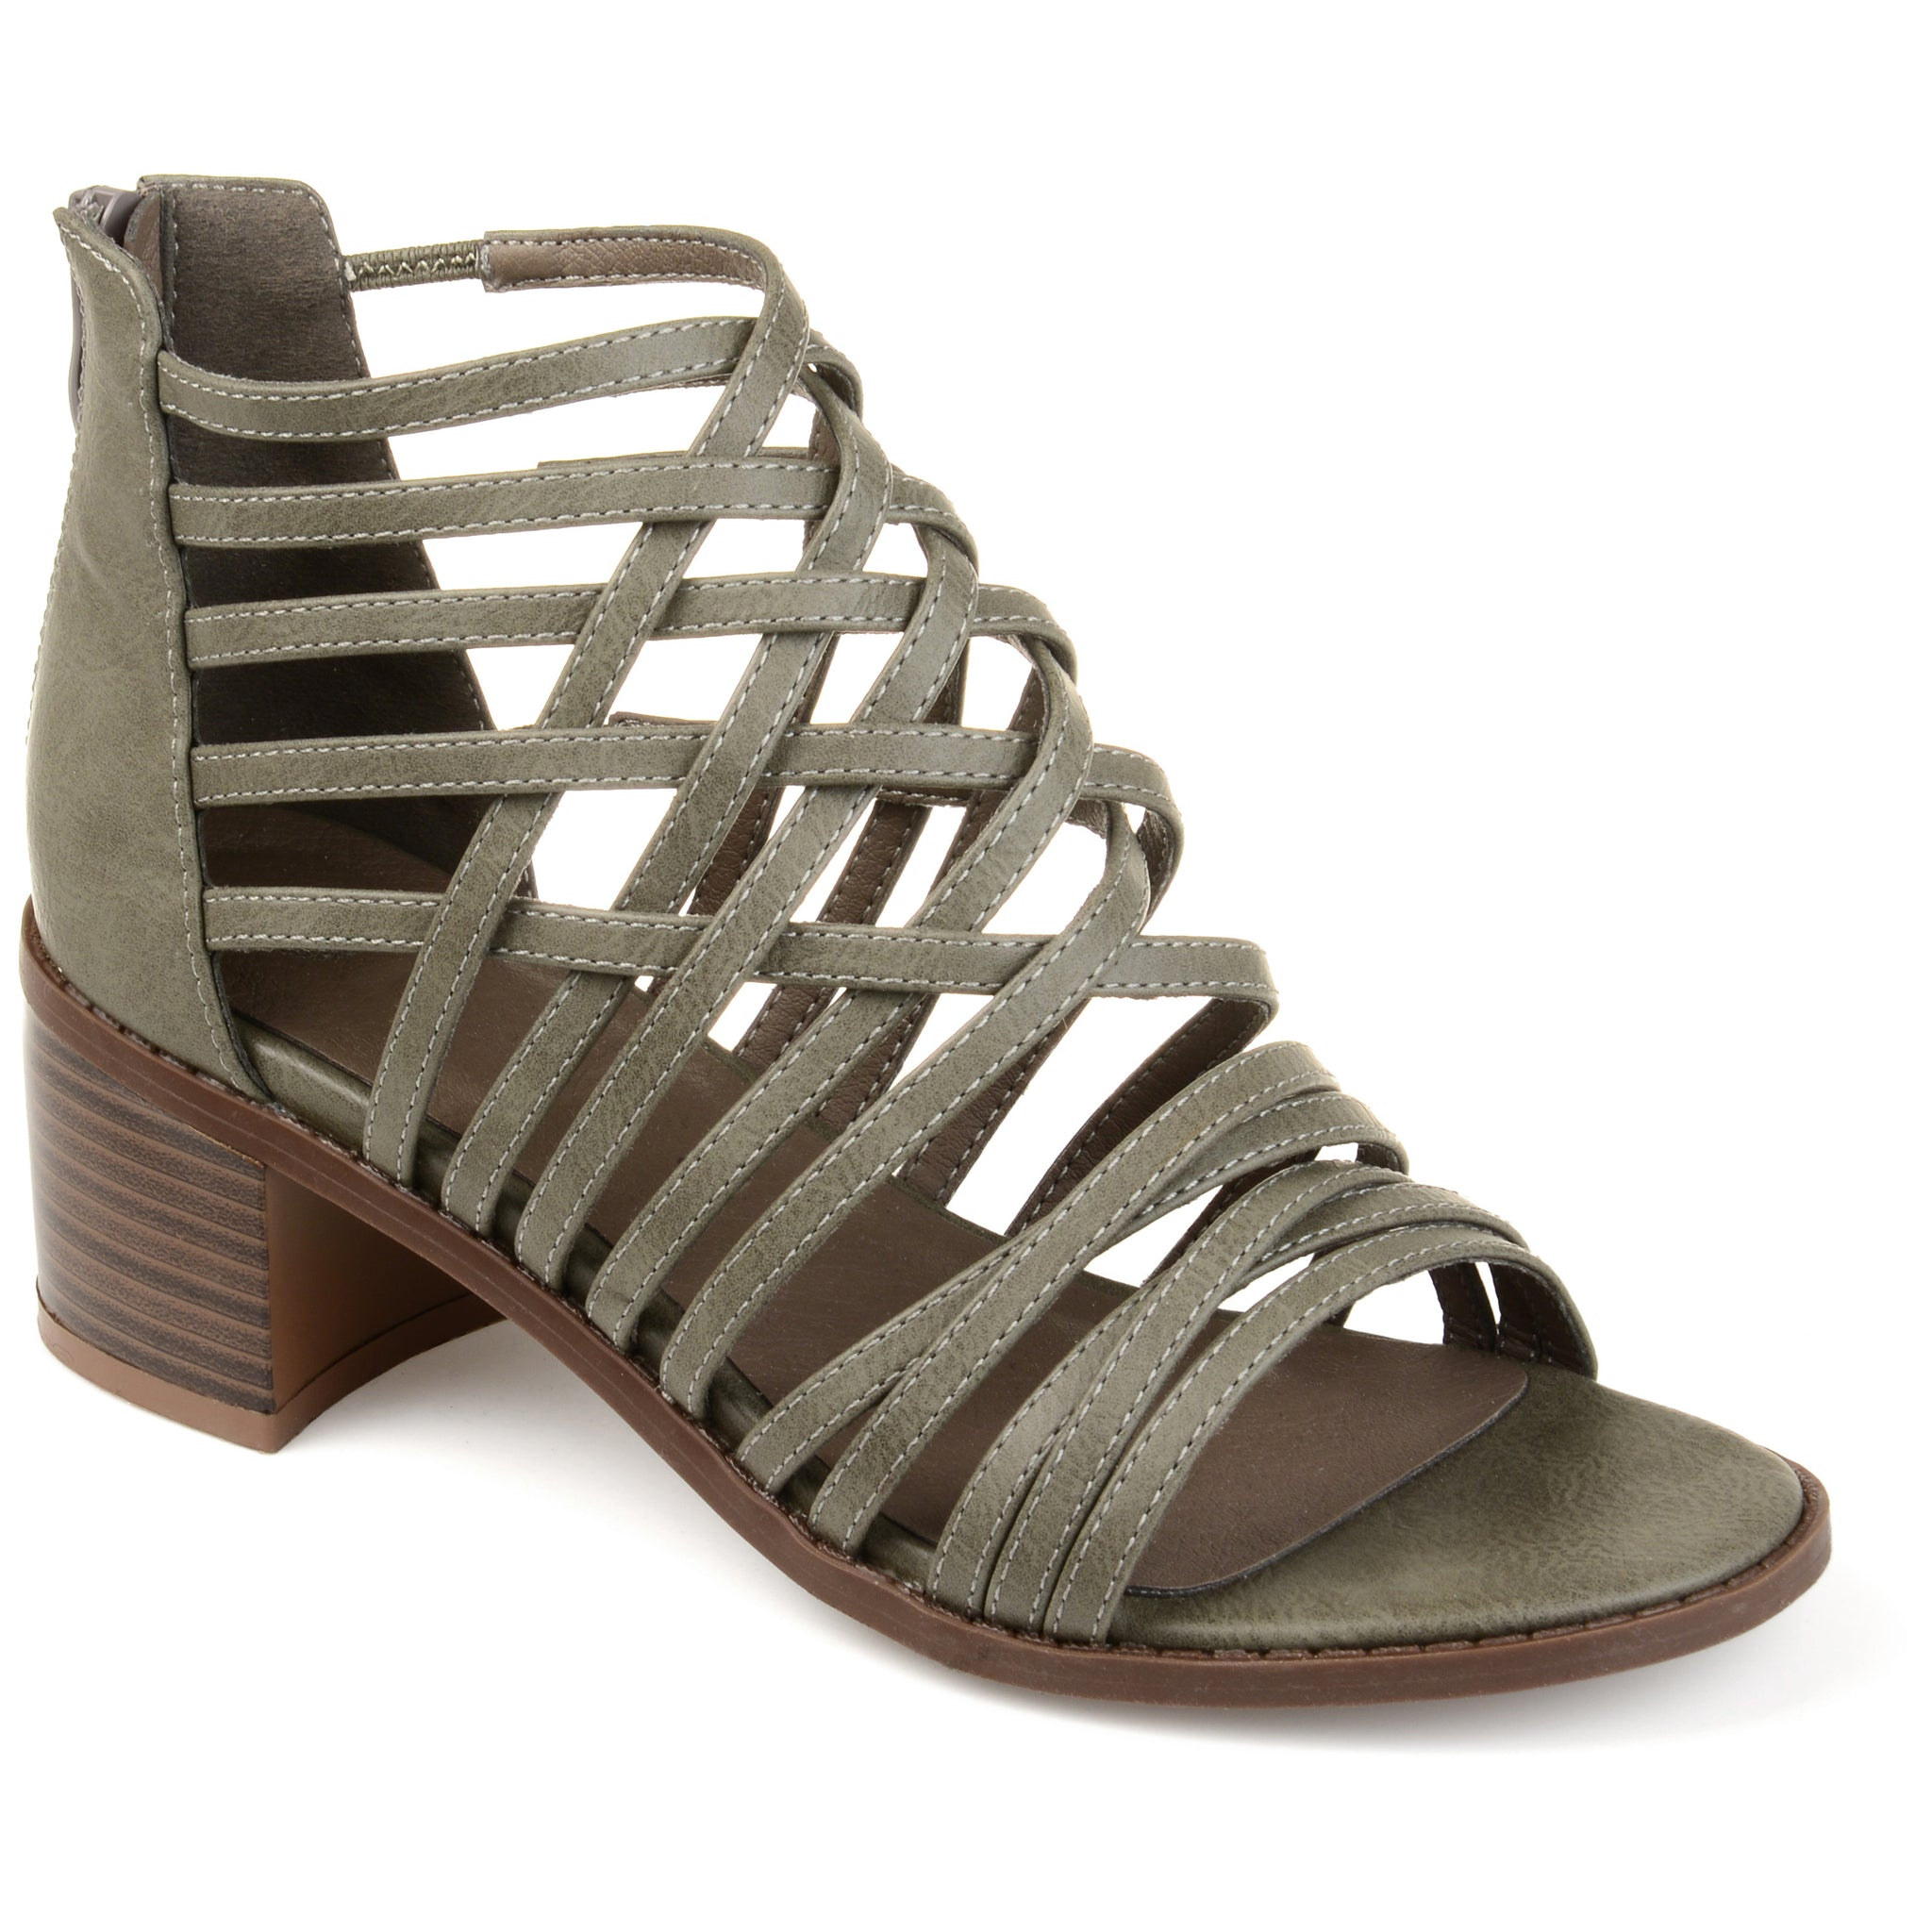 Criss-cross Caged Heeled Sandals